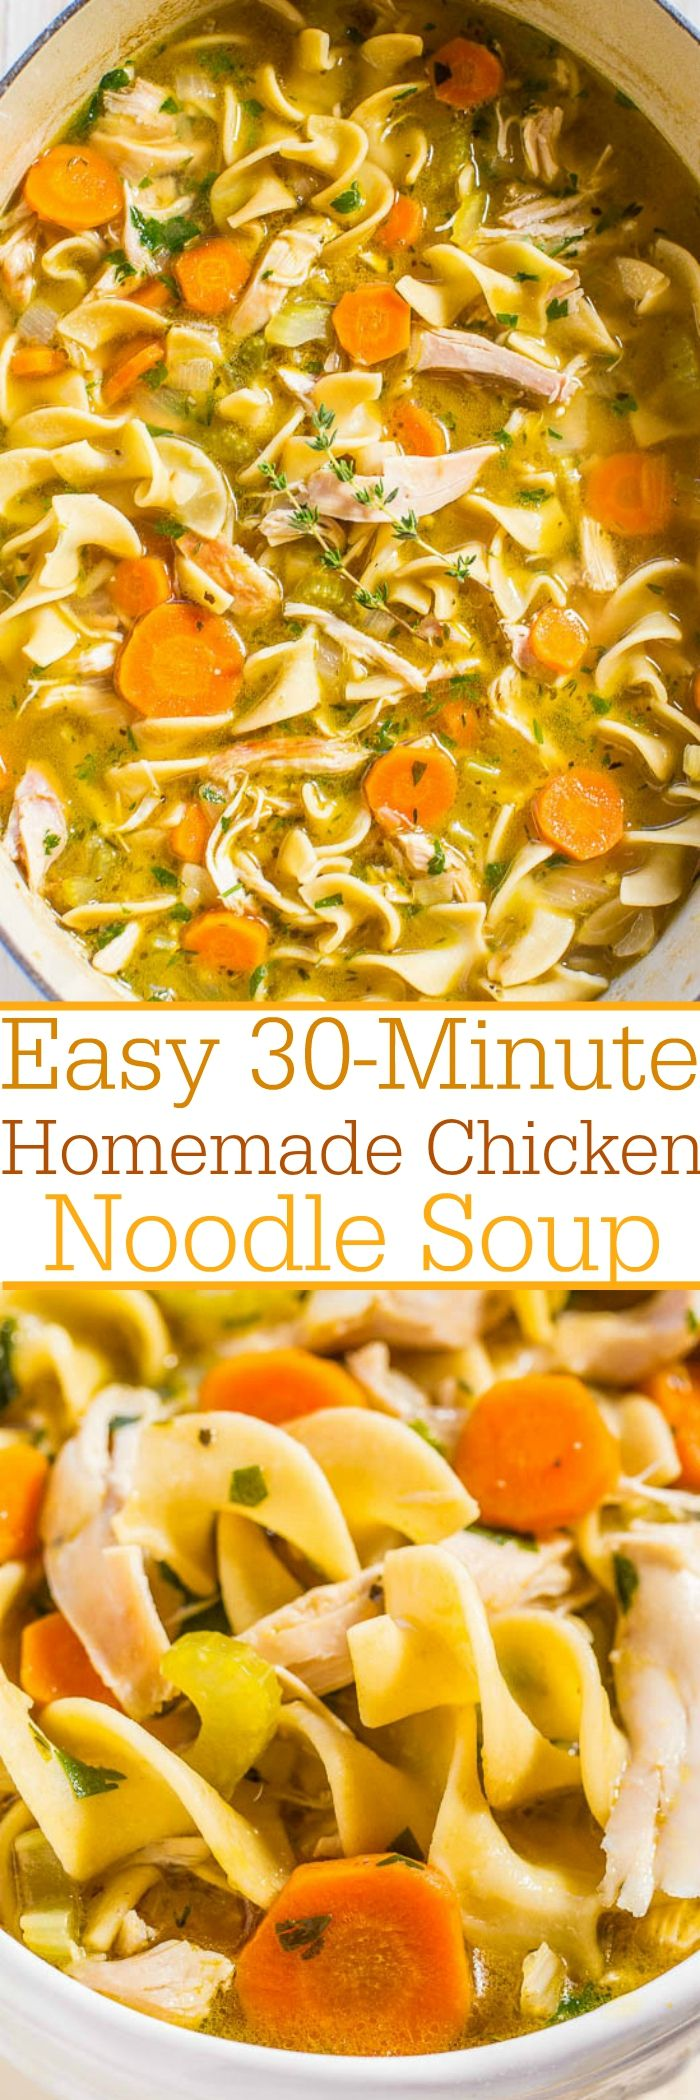 Easy 30-Minute Homemade Chicken Noodle Soup - Classic, comforting, and tastes just like grandma made but way easier and faster!!